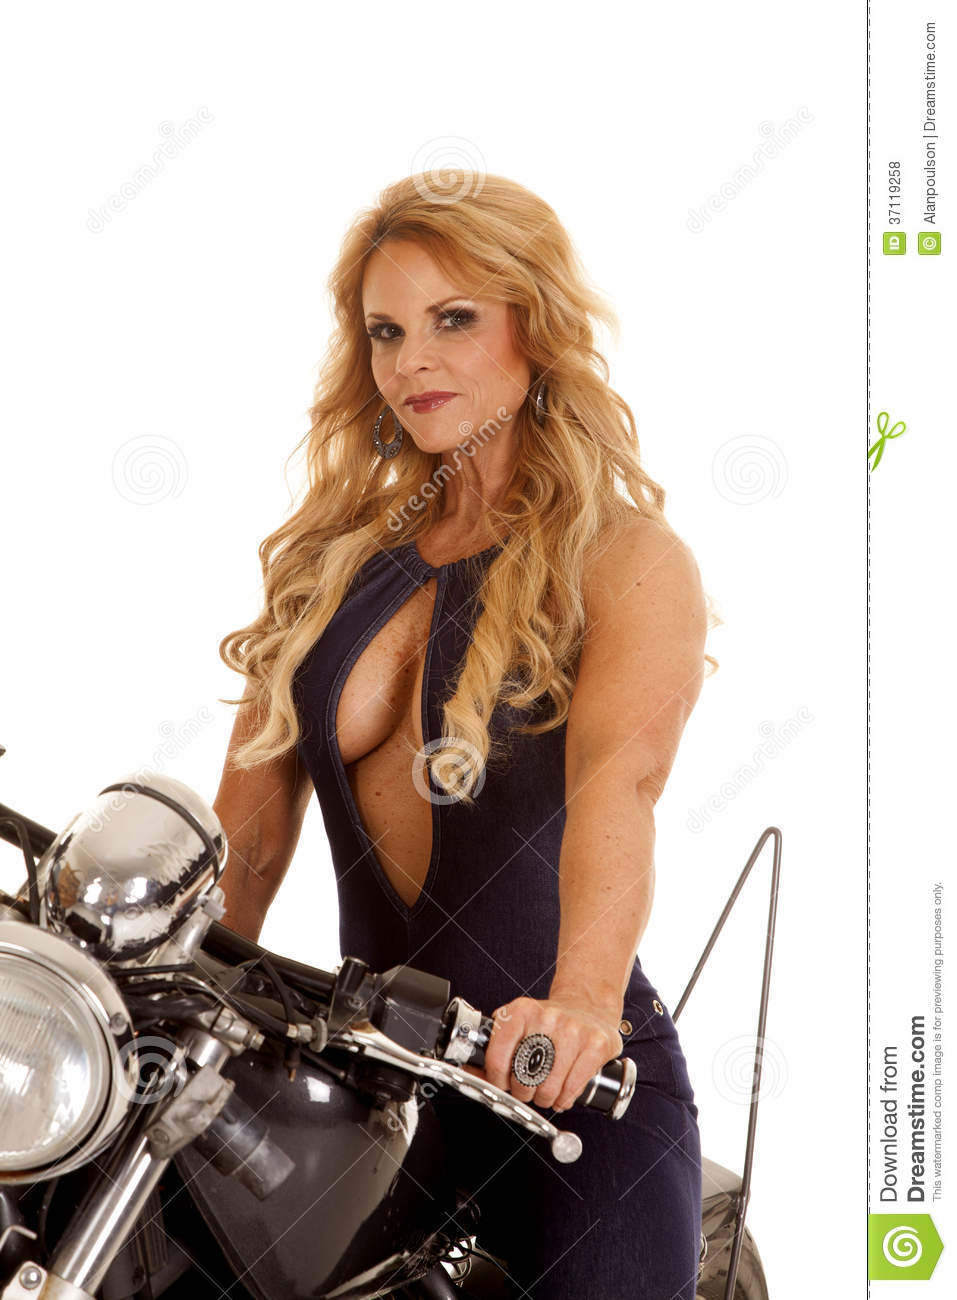 Mature Motorcycle Pictures 22